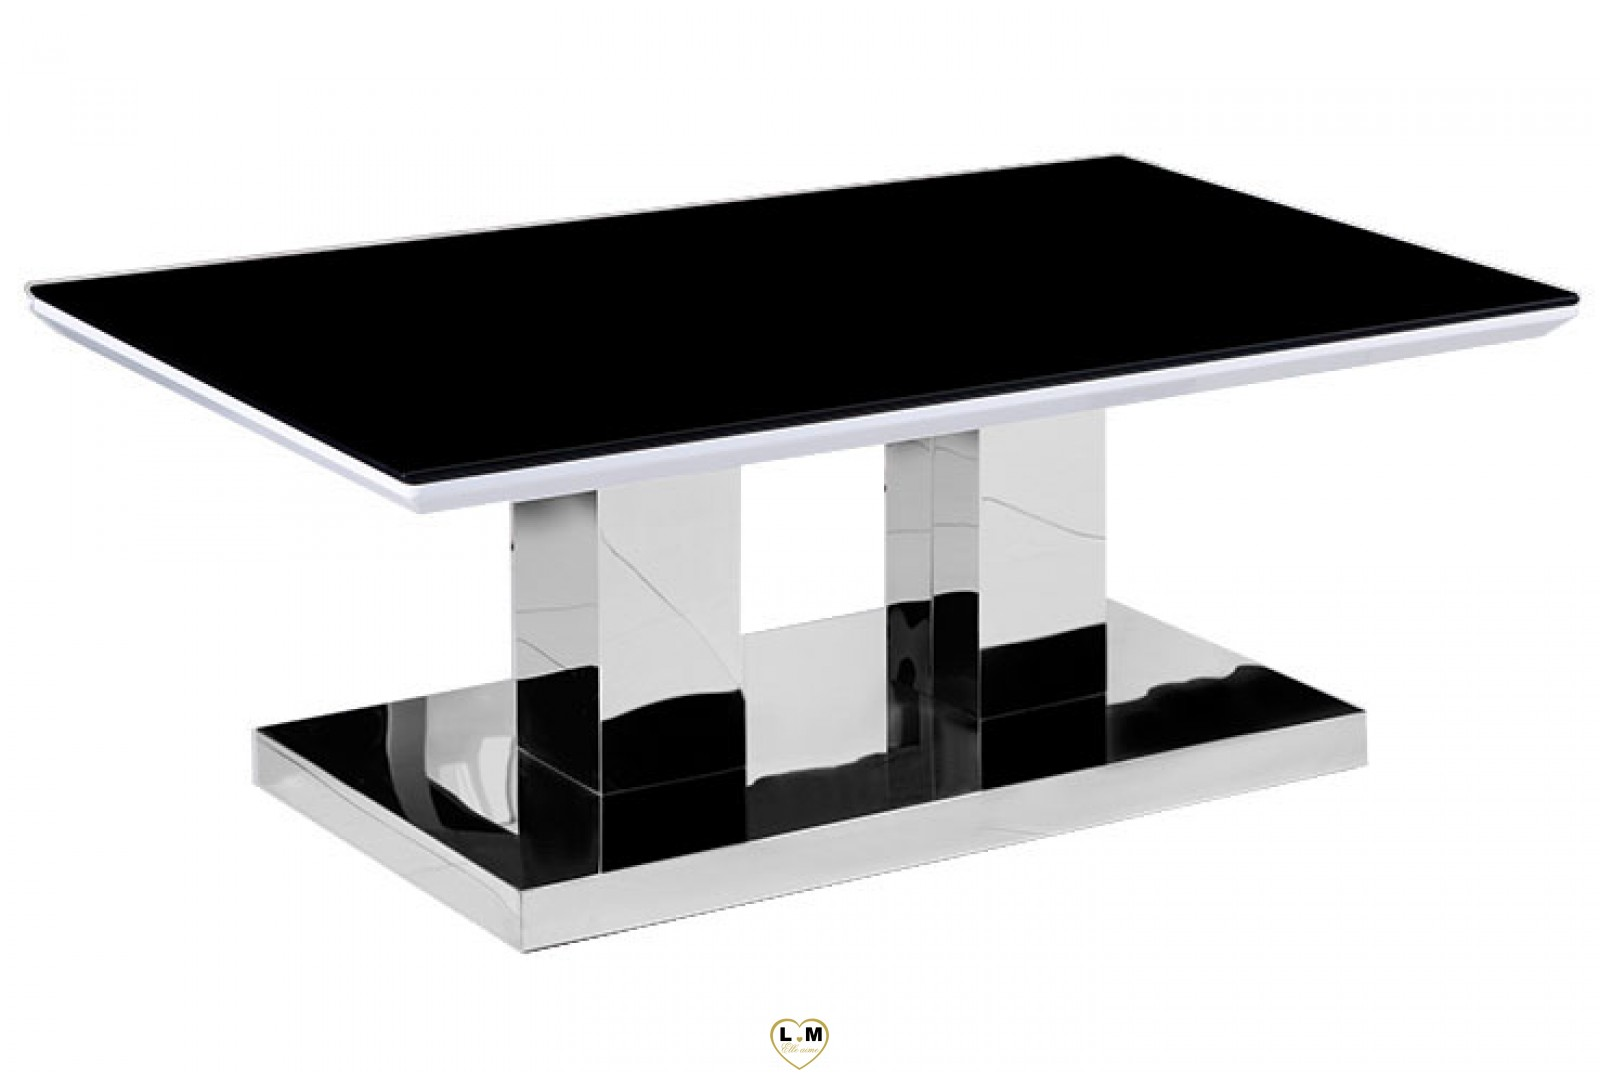 tba601 table basse chrome plateau verre noir lignemeuble com. Black Bedroom Furniture Sets. Home Design Ideas